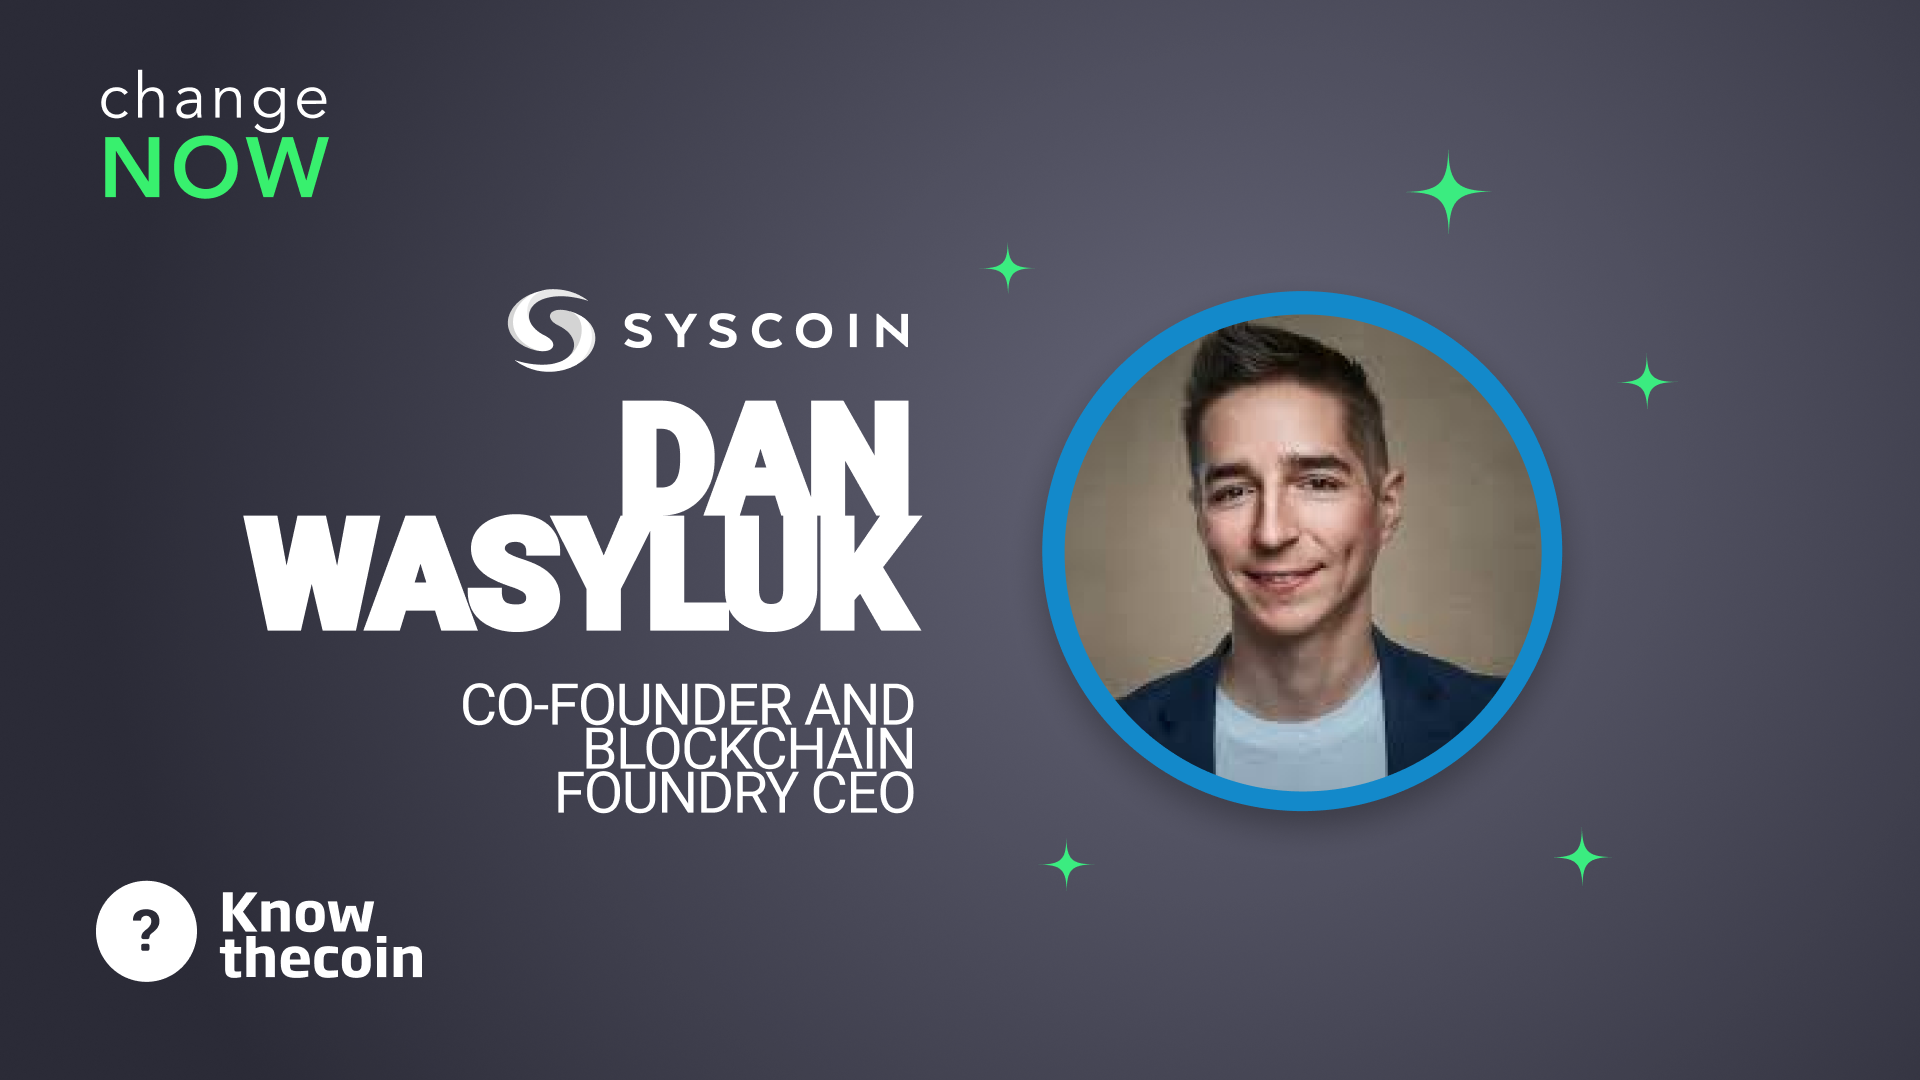 Know The Coin: SysCoin Co-Founder, Blockchain Foundry CEO Dan Wasyluk